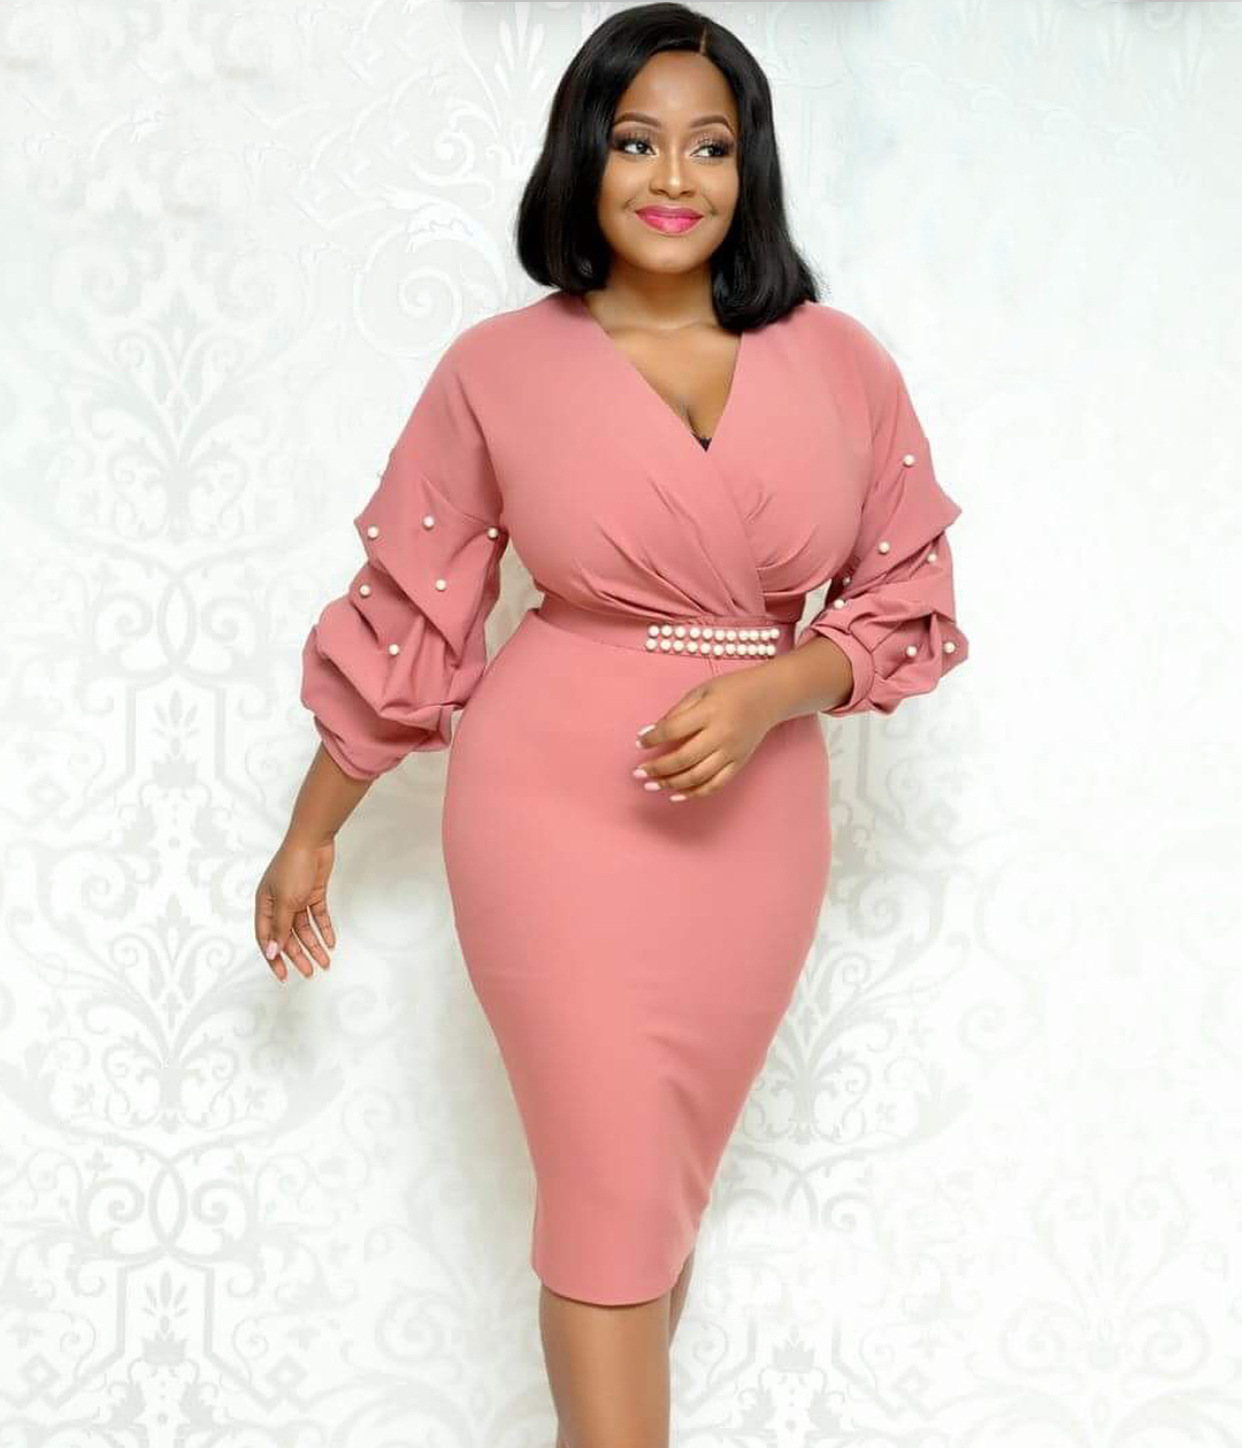 US $19.27 6% OFF|2019 new summer fashion style african women plus size  dress-in Africa Clothing from Novelty & Special Use on Aliexpress.com |  Alibaba ...